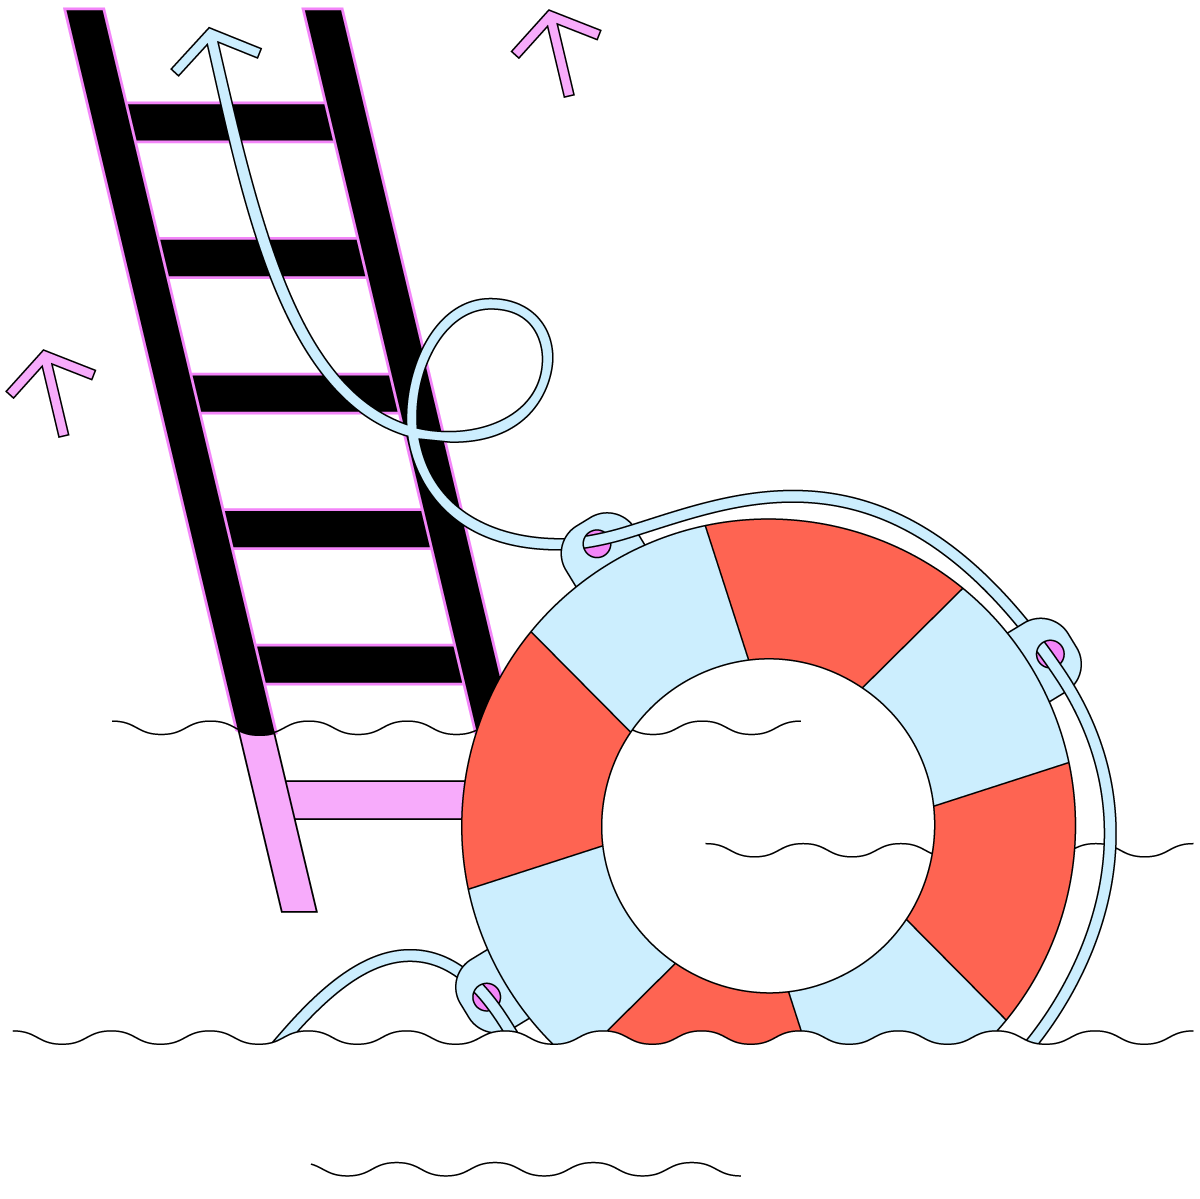 Cartoon graphic of the ocean with a lifebuoy and a ladder